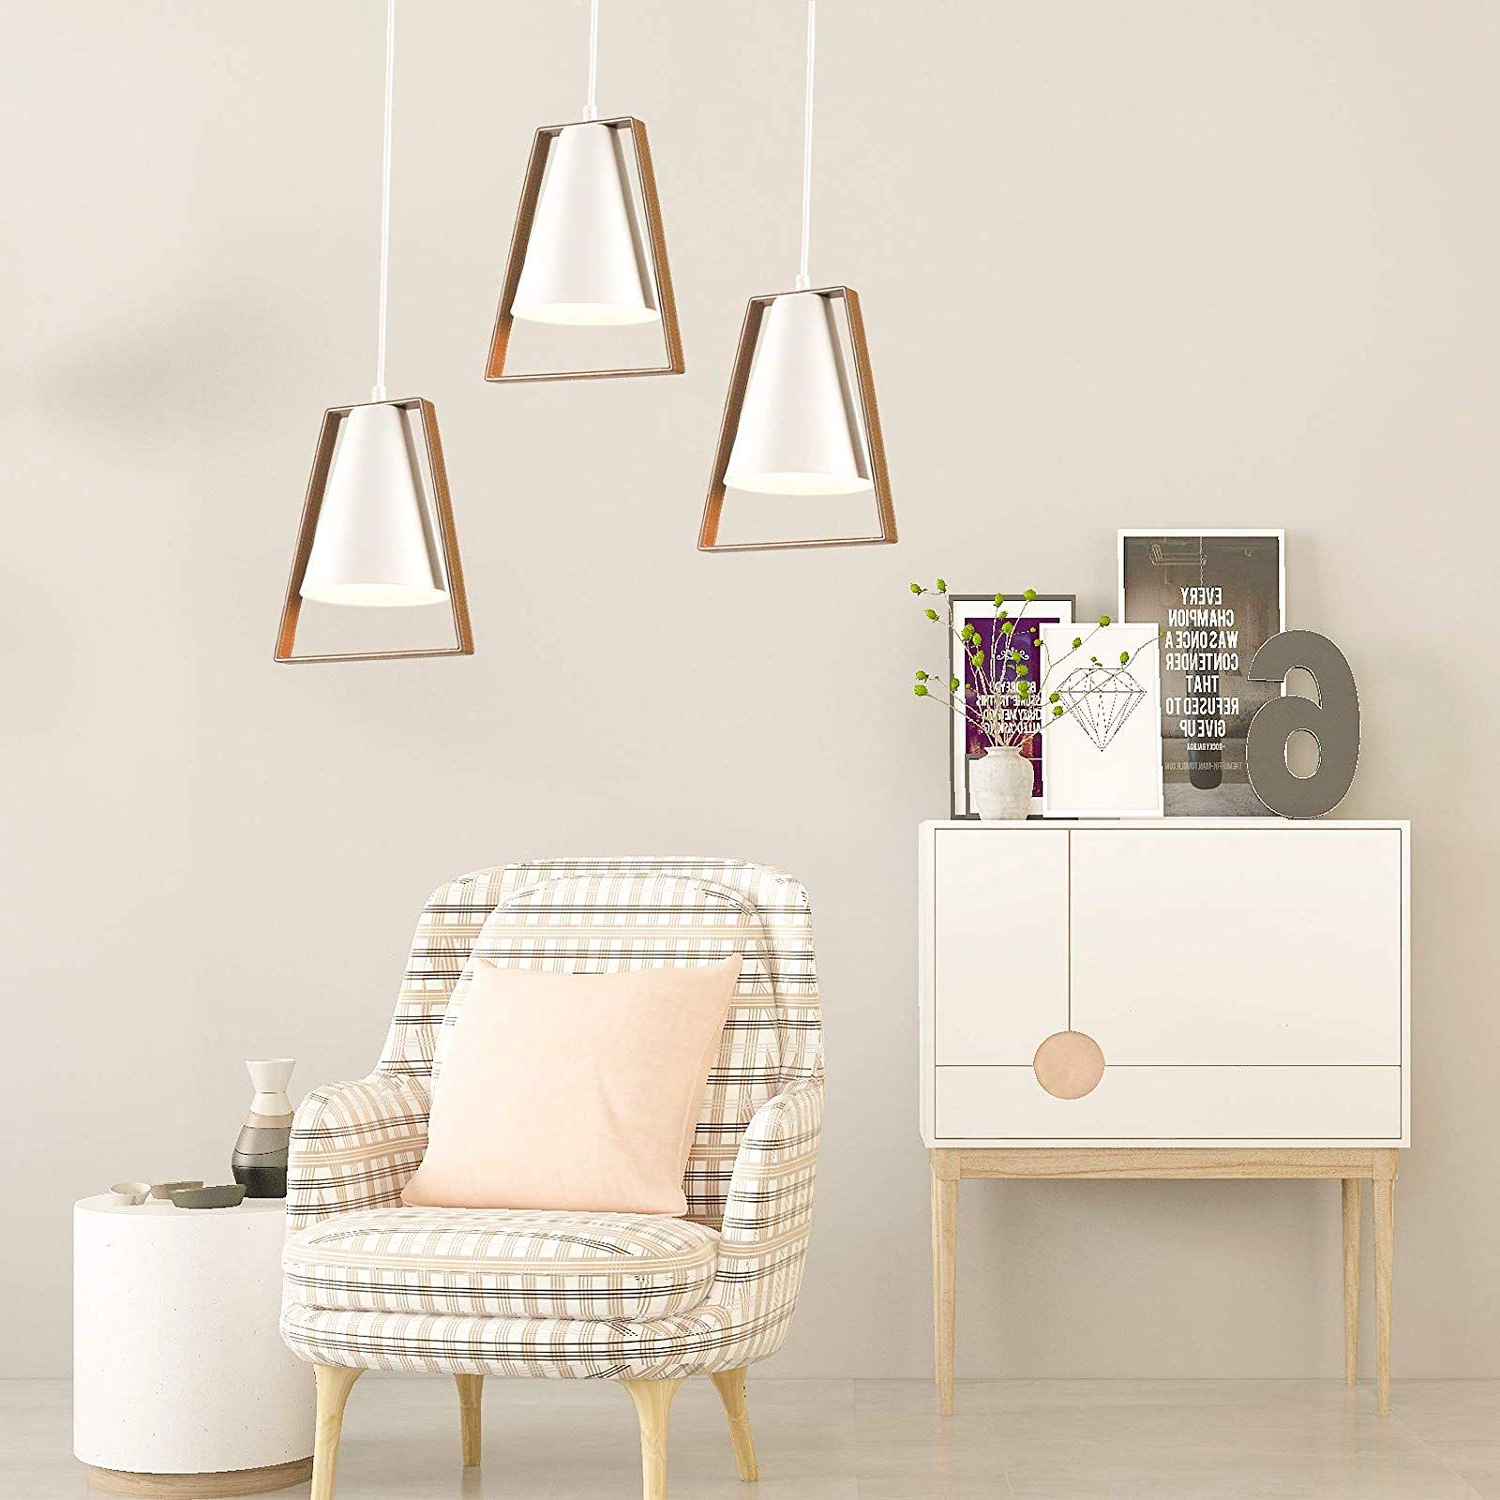 Preferred Fashionou 1 Pendant Light (View 23 of 25)